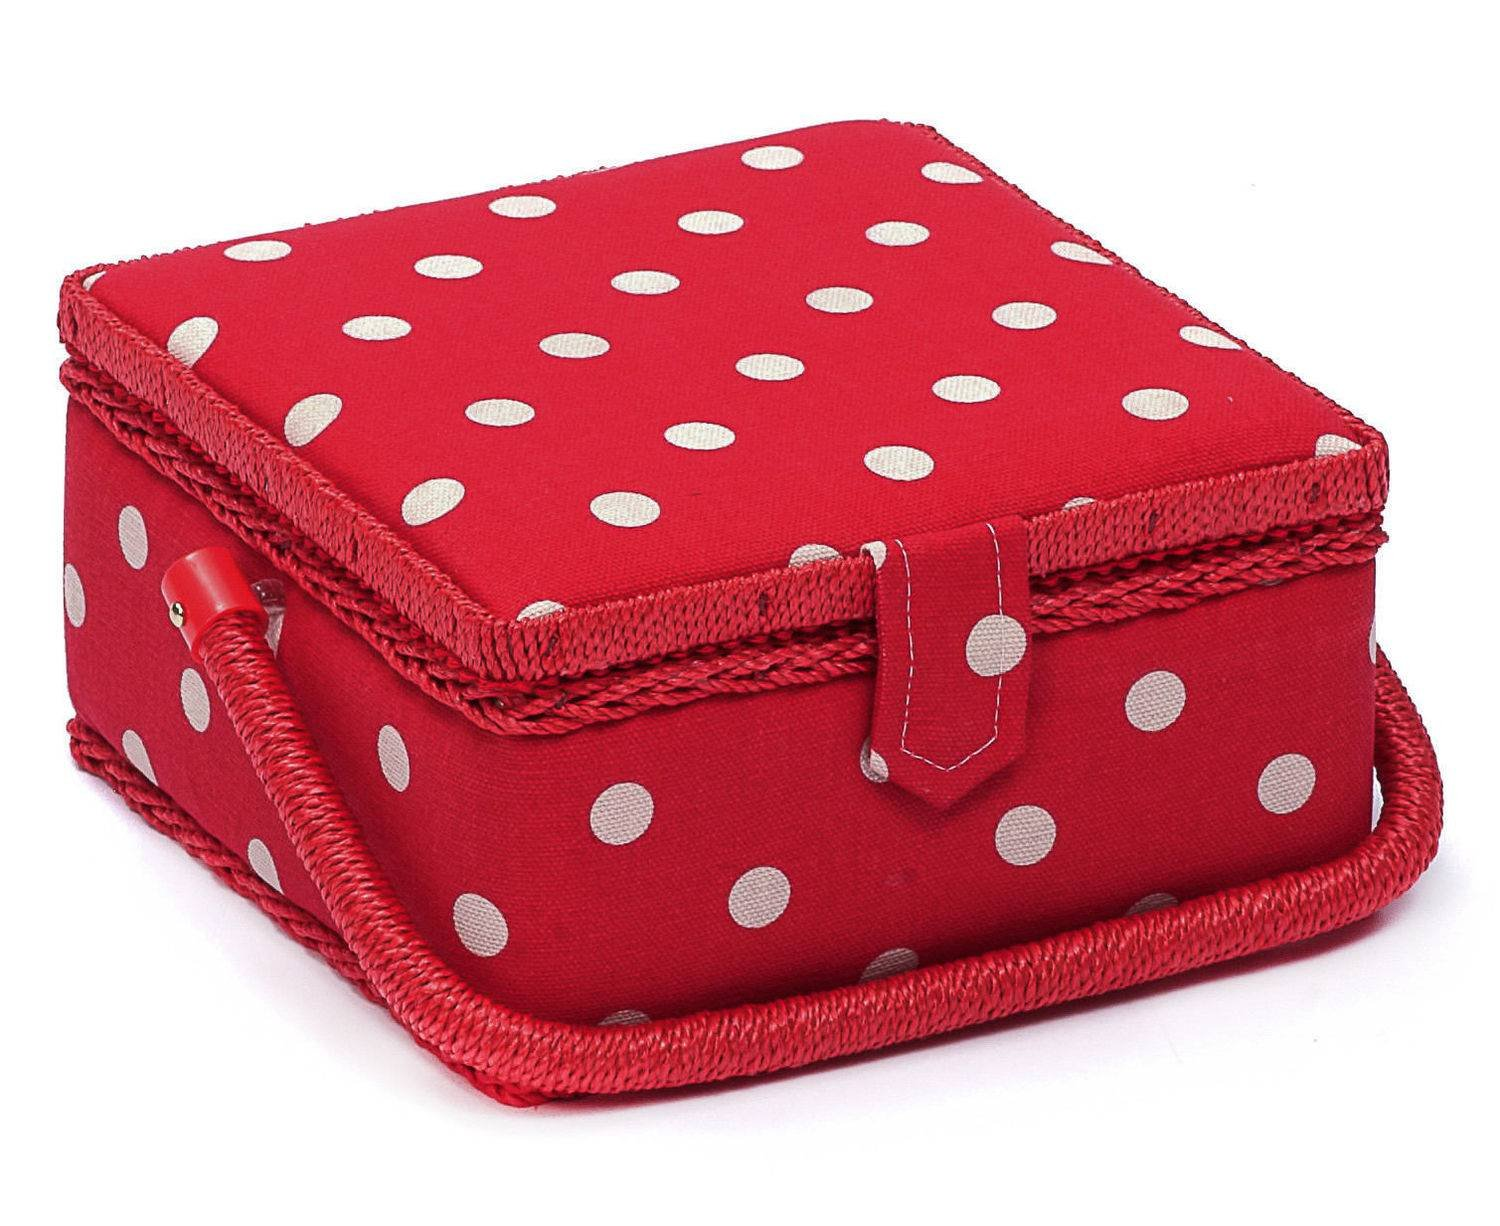 Hobby Gift MRS/19 White Spot Print/Red Small Sewing Storage Box 20 x 20 x 11cm Groves Asia